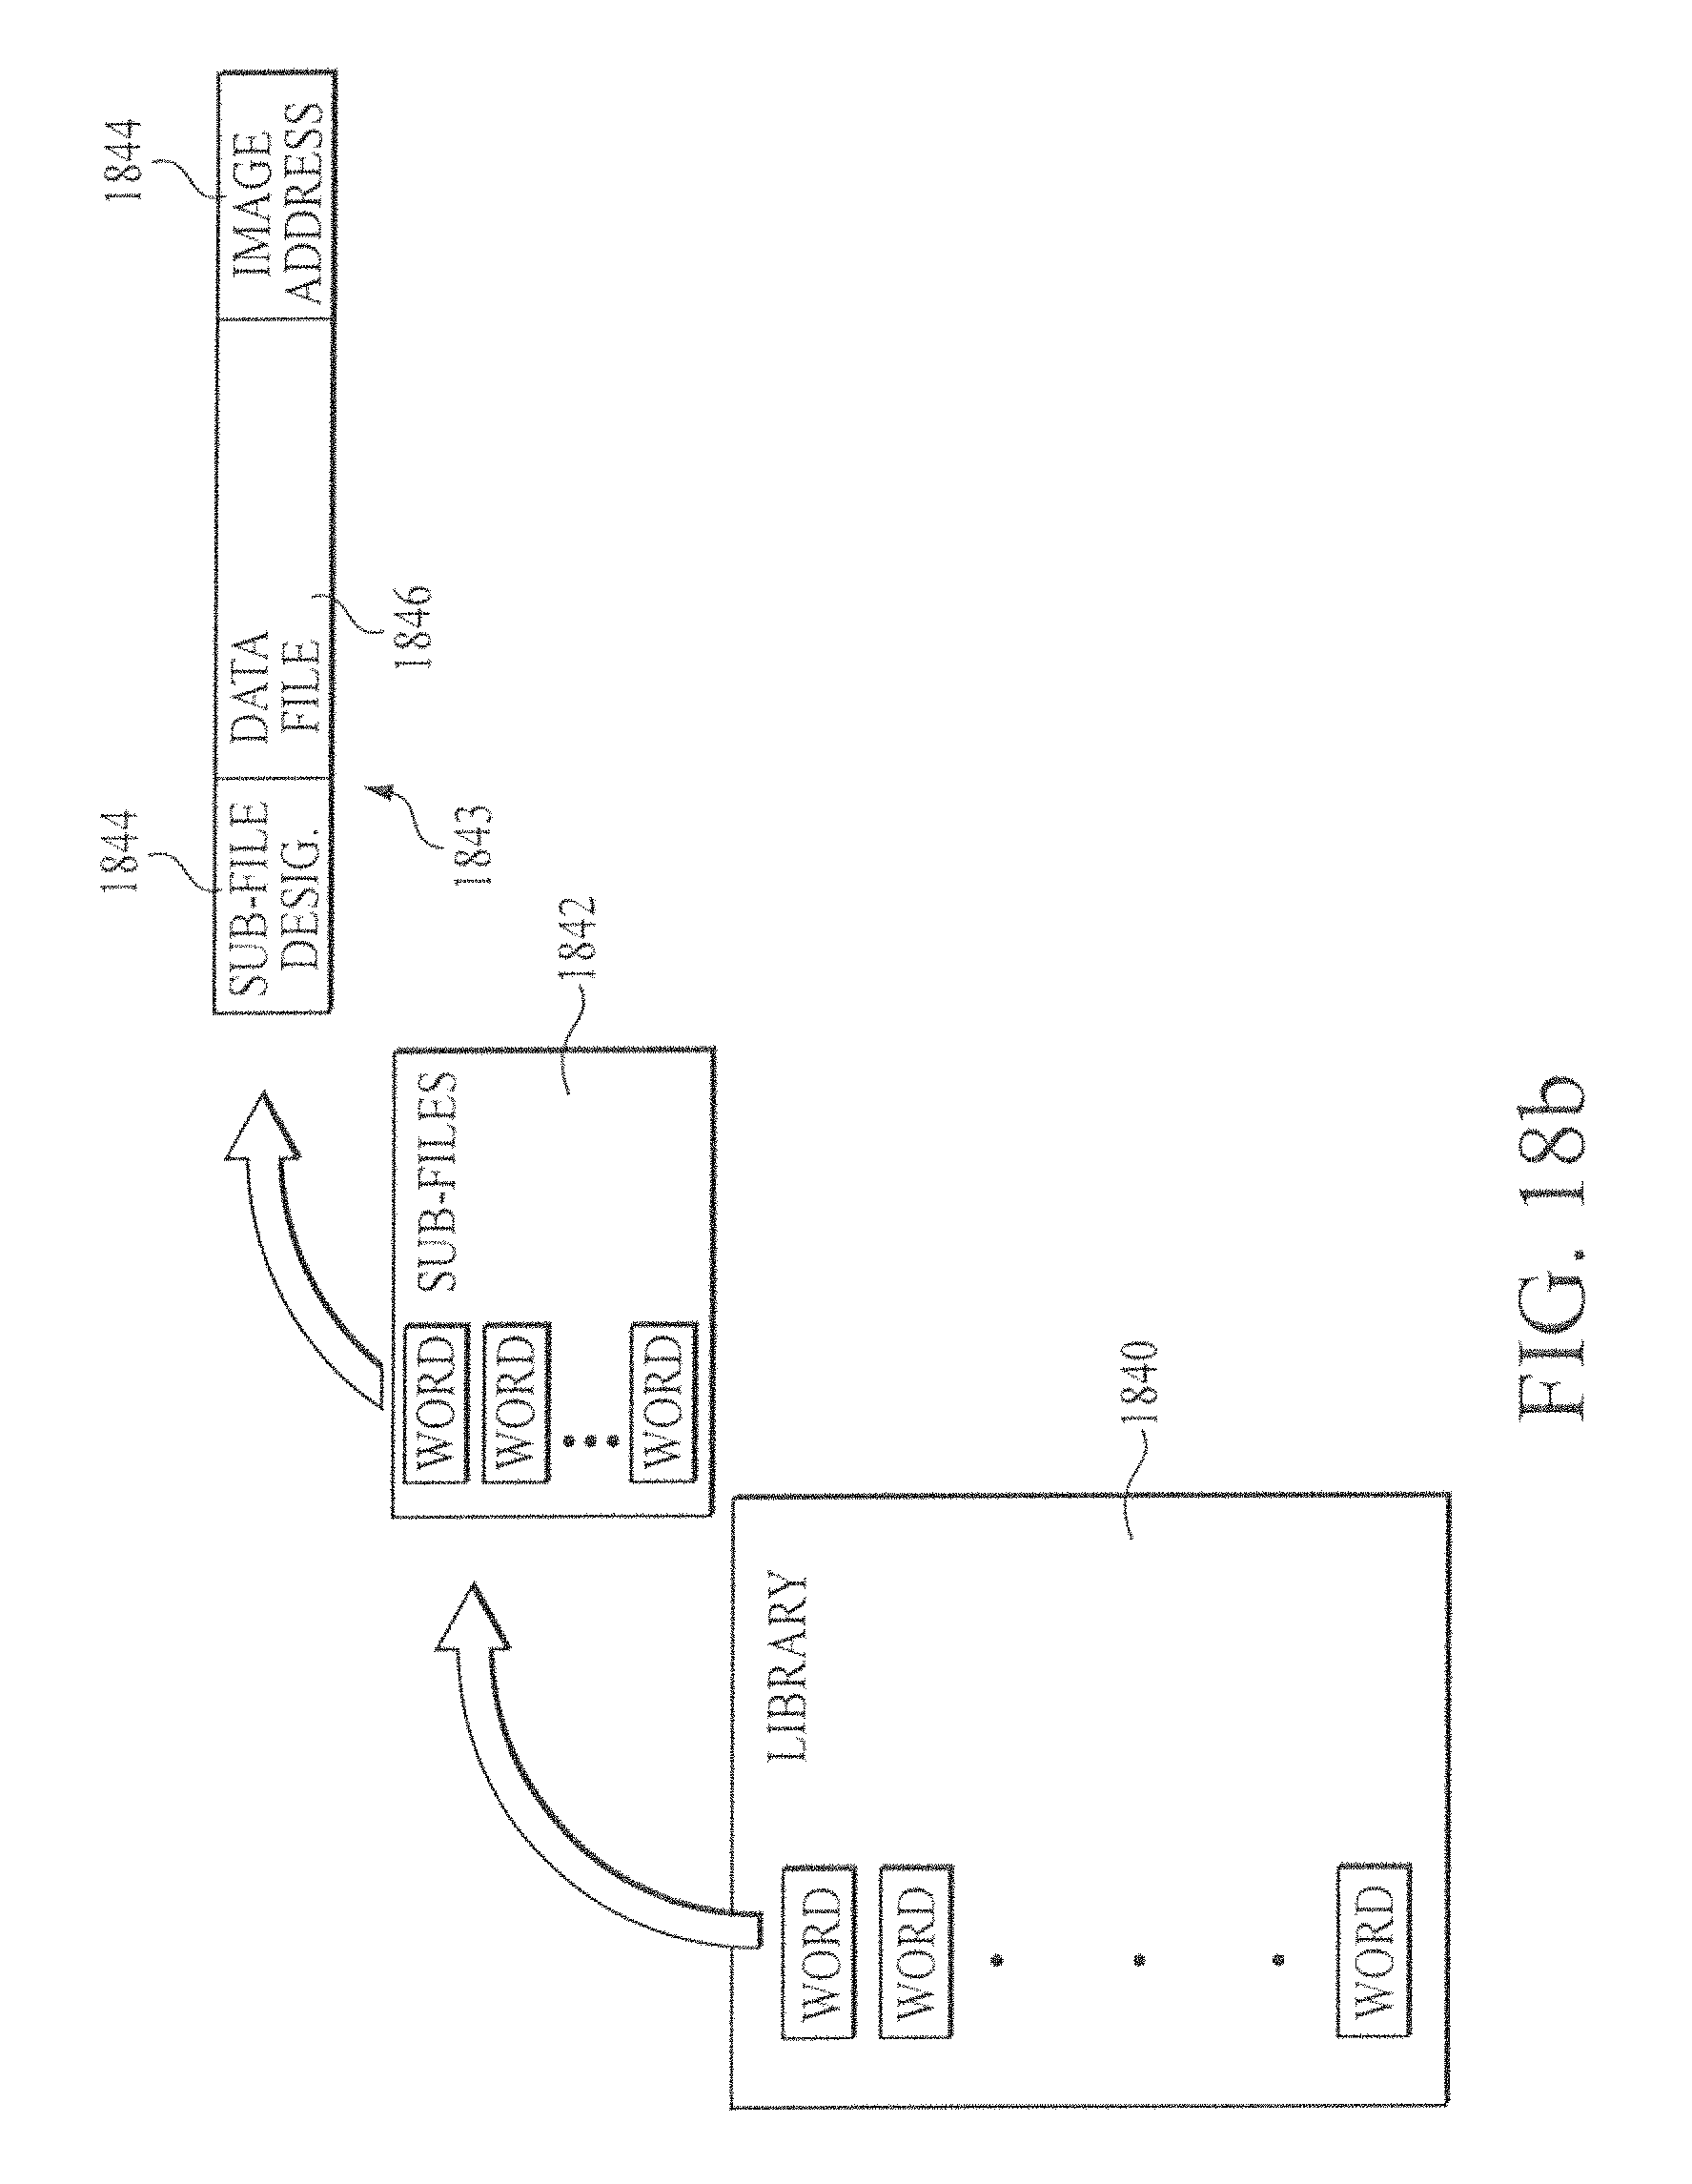 Patent Us 9715368 B2 Charger Circuit Diagram As Well On Magellan Gps Diagrams 0 Petitions